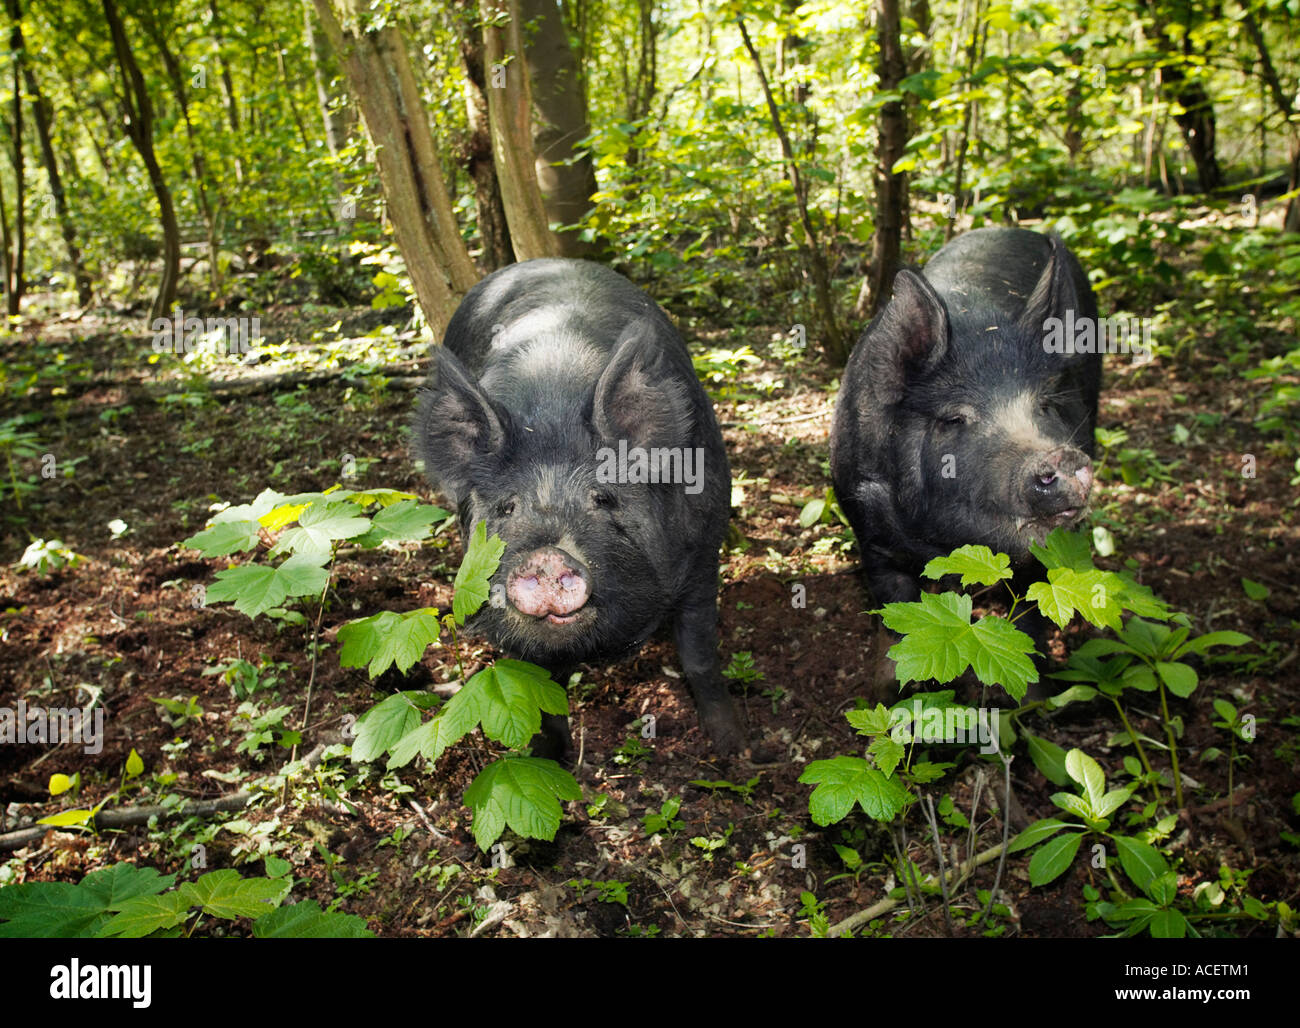 Berkshire breed pigs roaming in a woodland enclosure Yorkshire UK - Stock Image